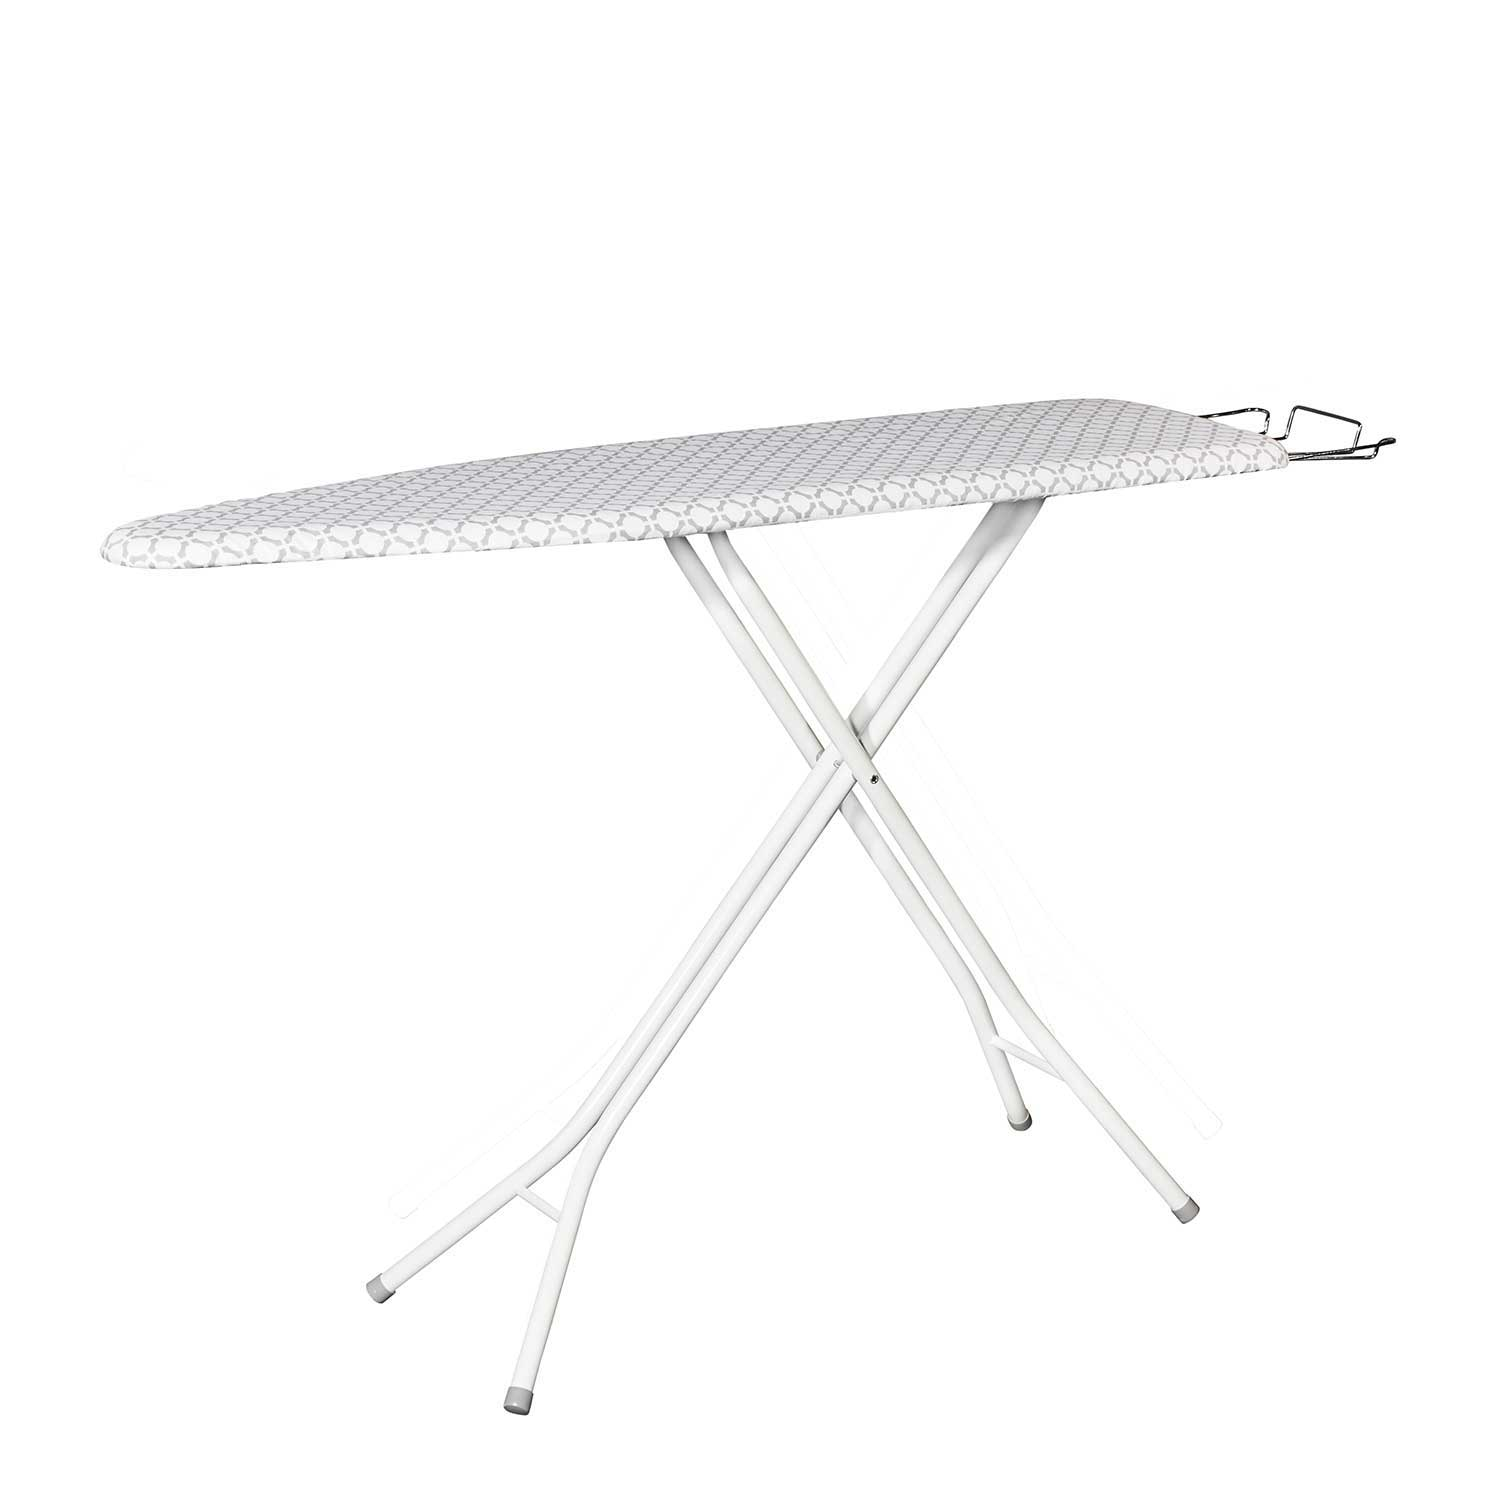 Full-Size Folding Ironing Board (83130)